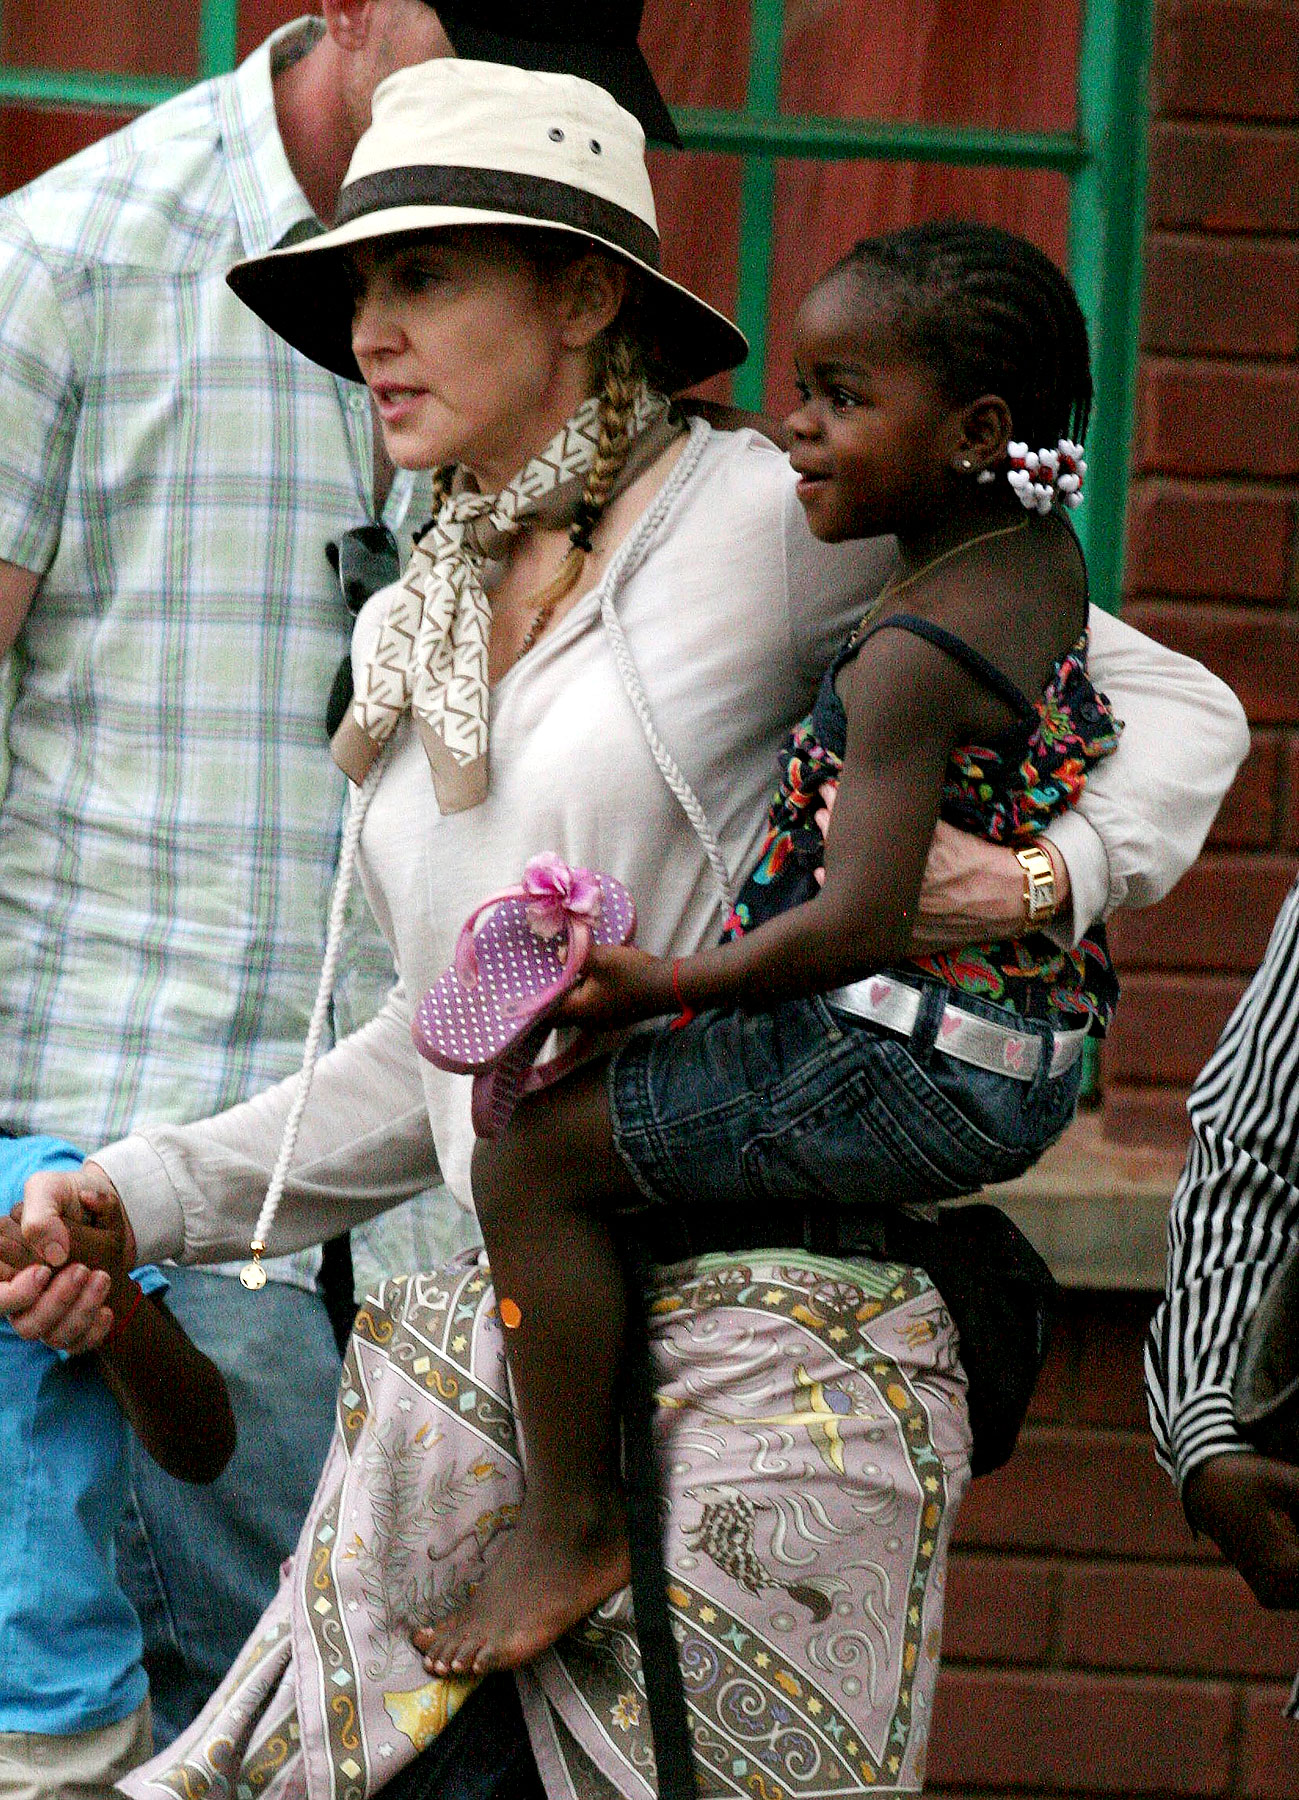 PHOTO GALLERY: Madonna Goes to Malawi